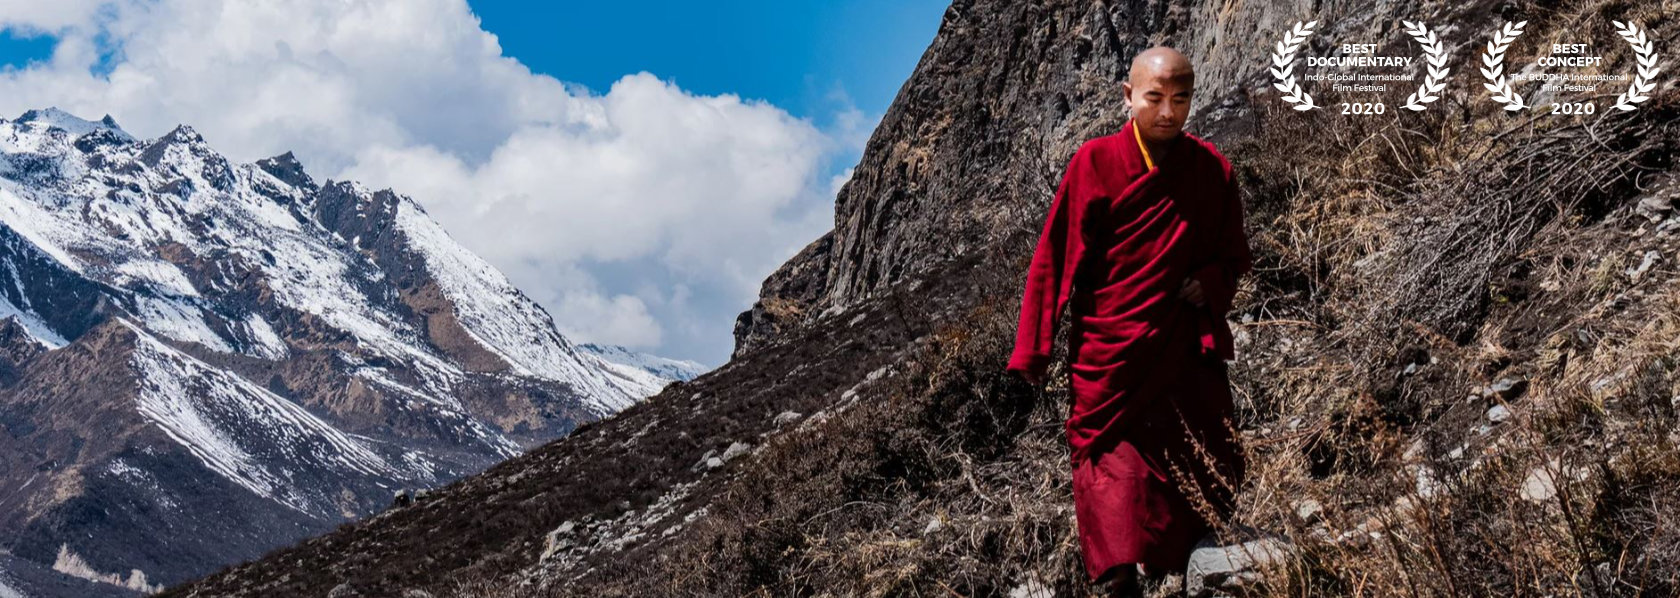 Mingyur Rinpoche looking down walking on a mountain with winter mountain blue sky background - Wandering But Not Lost - THIS Buddhist Film Festival